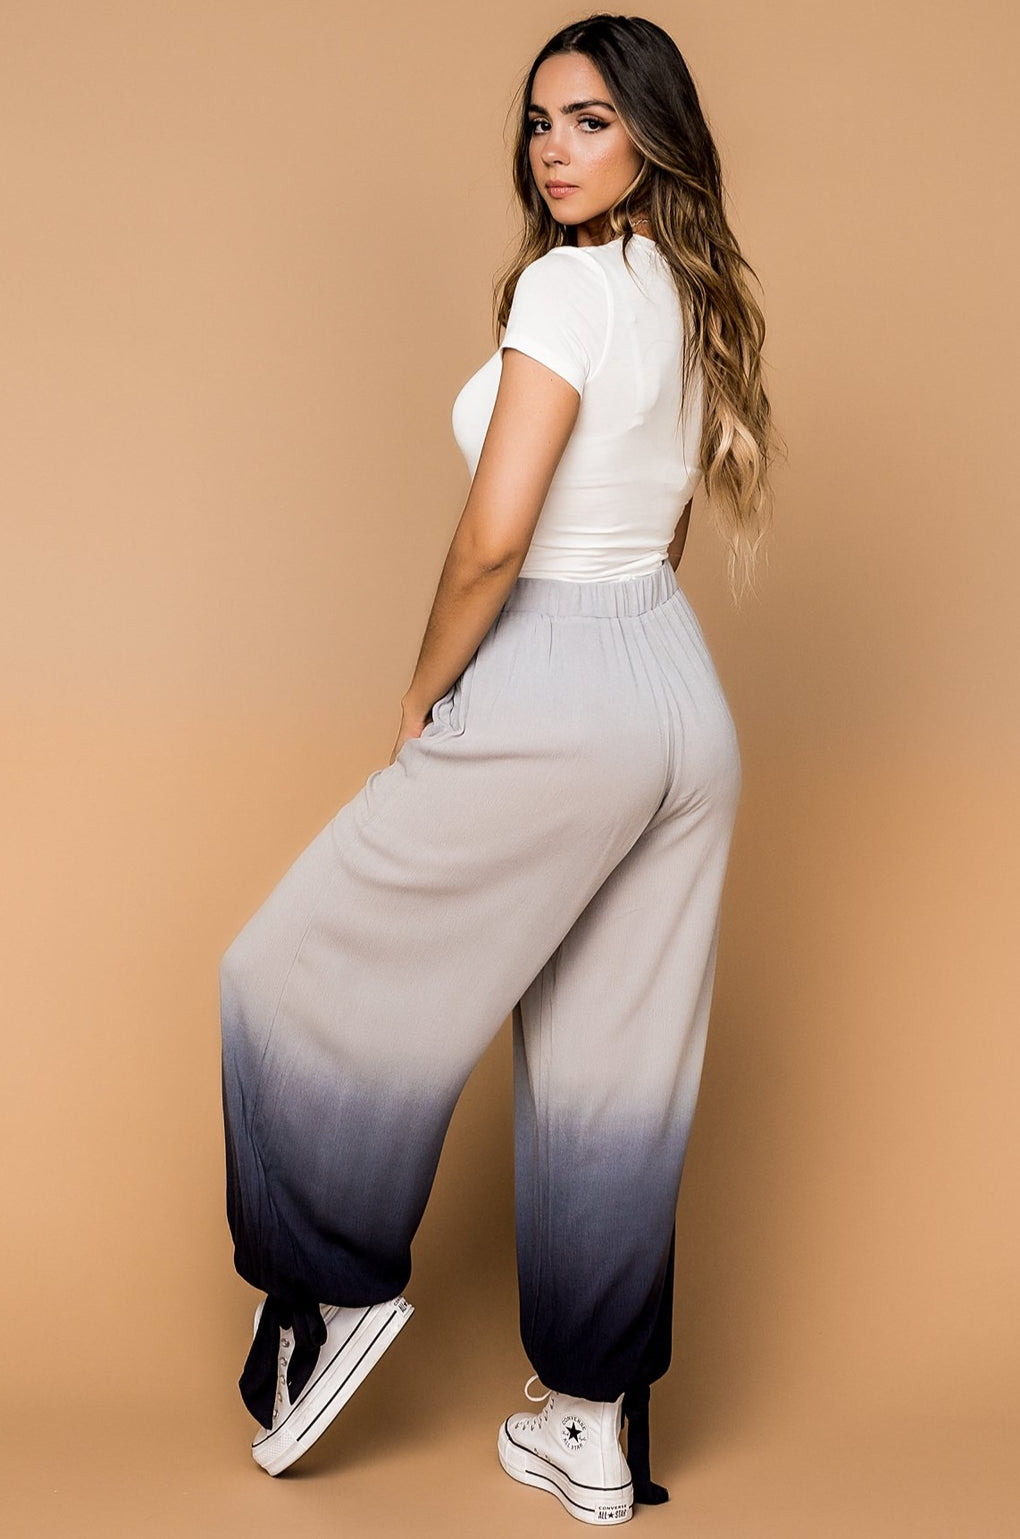 Malibu Waves Ombré Pants